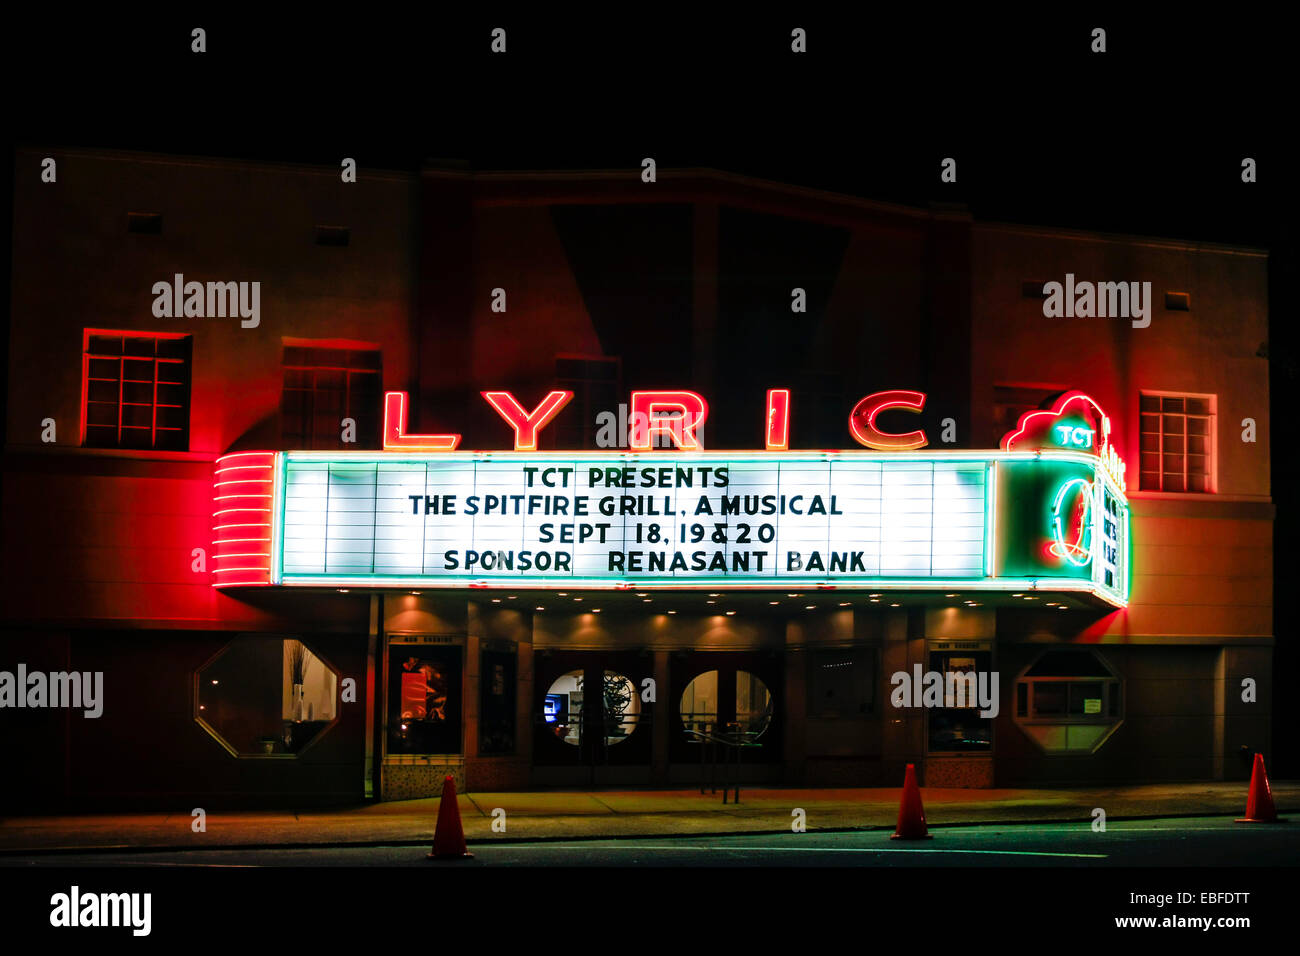 The Lyric Cinema in Tupelo Mississippi visited by Elvis as a boy - Stock Image